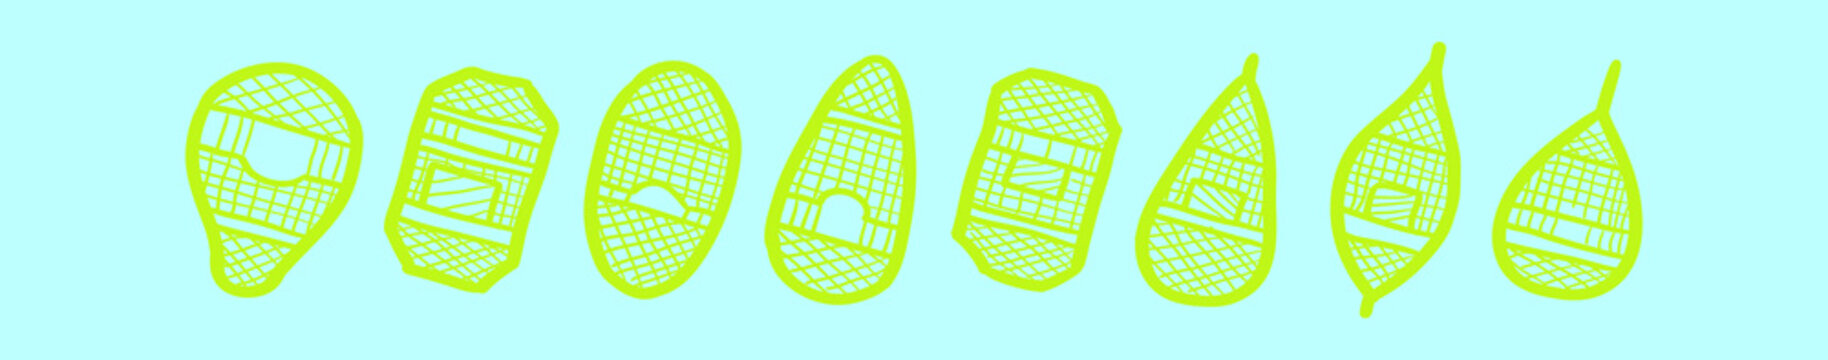 set of snow shoes cartoon icon design template with various models. vector illustration isolated on blue background